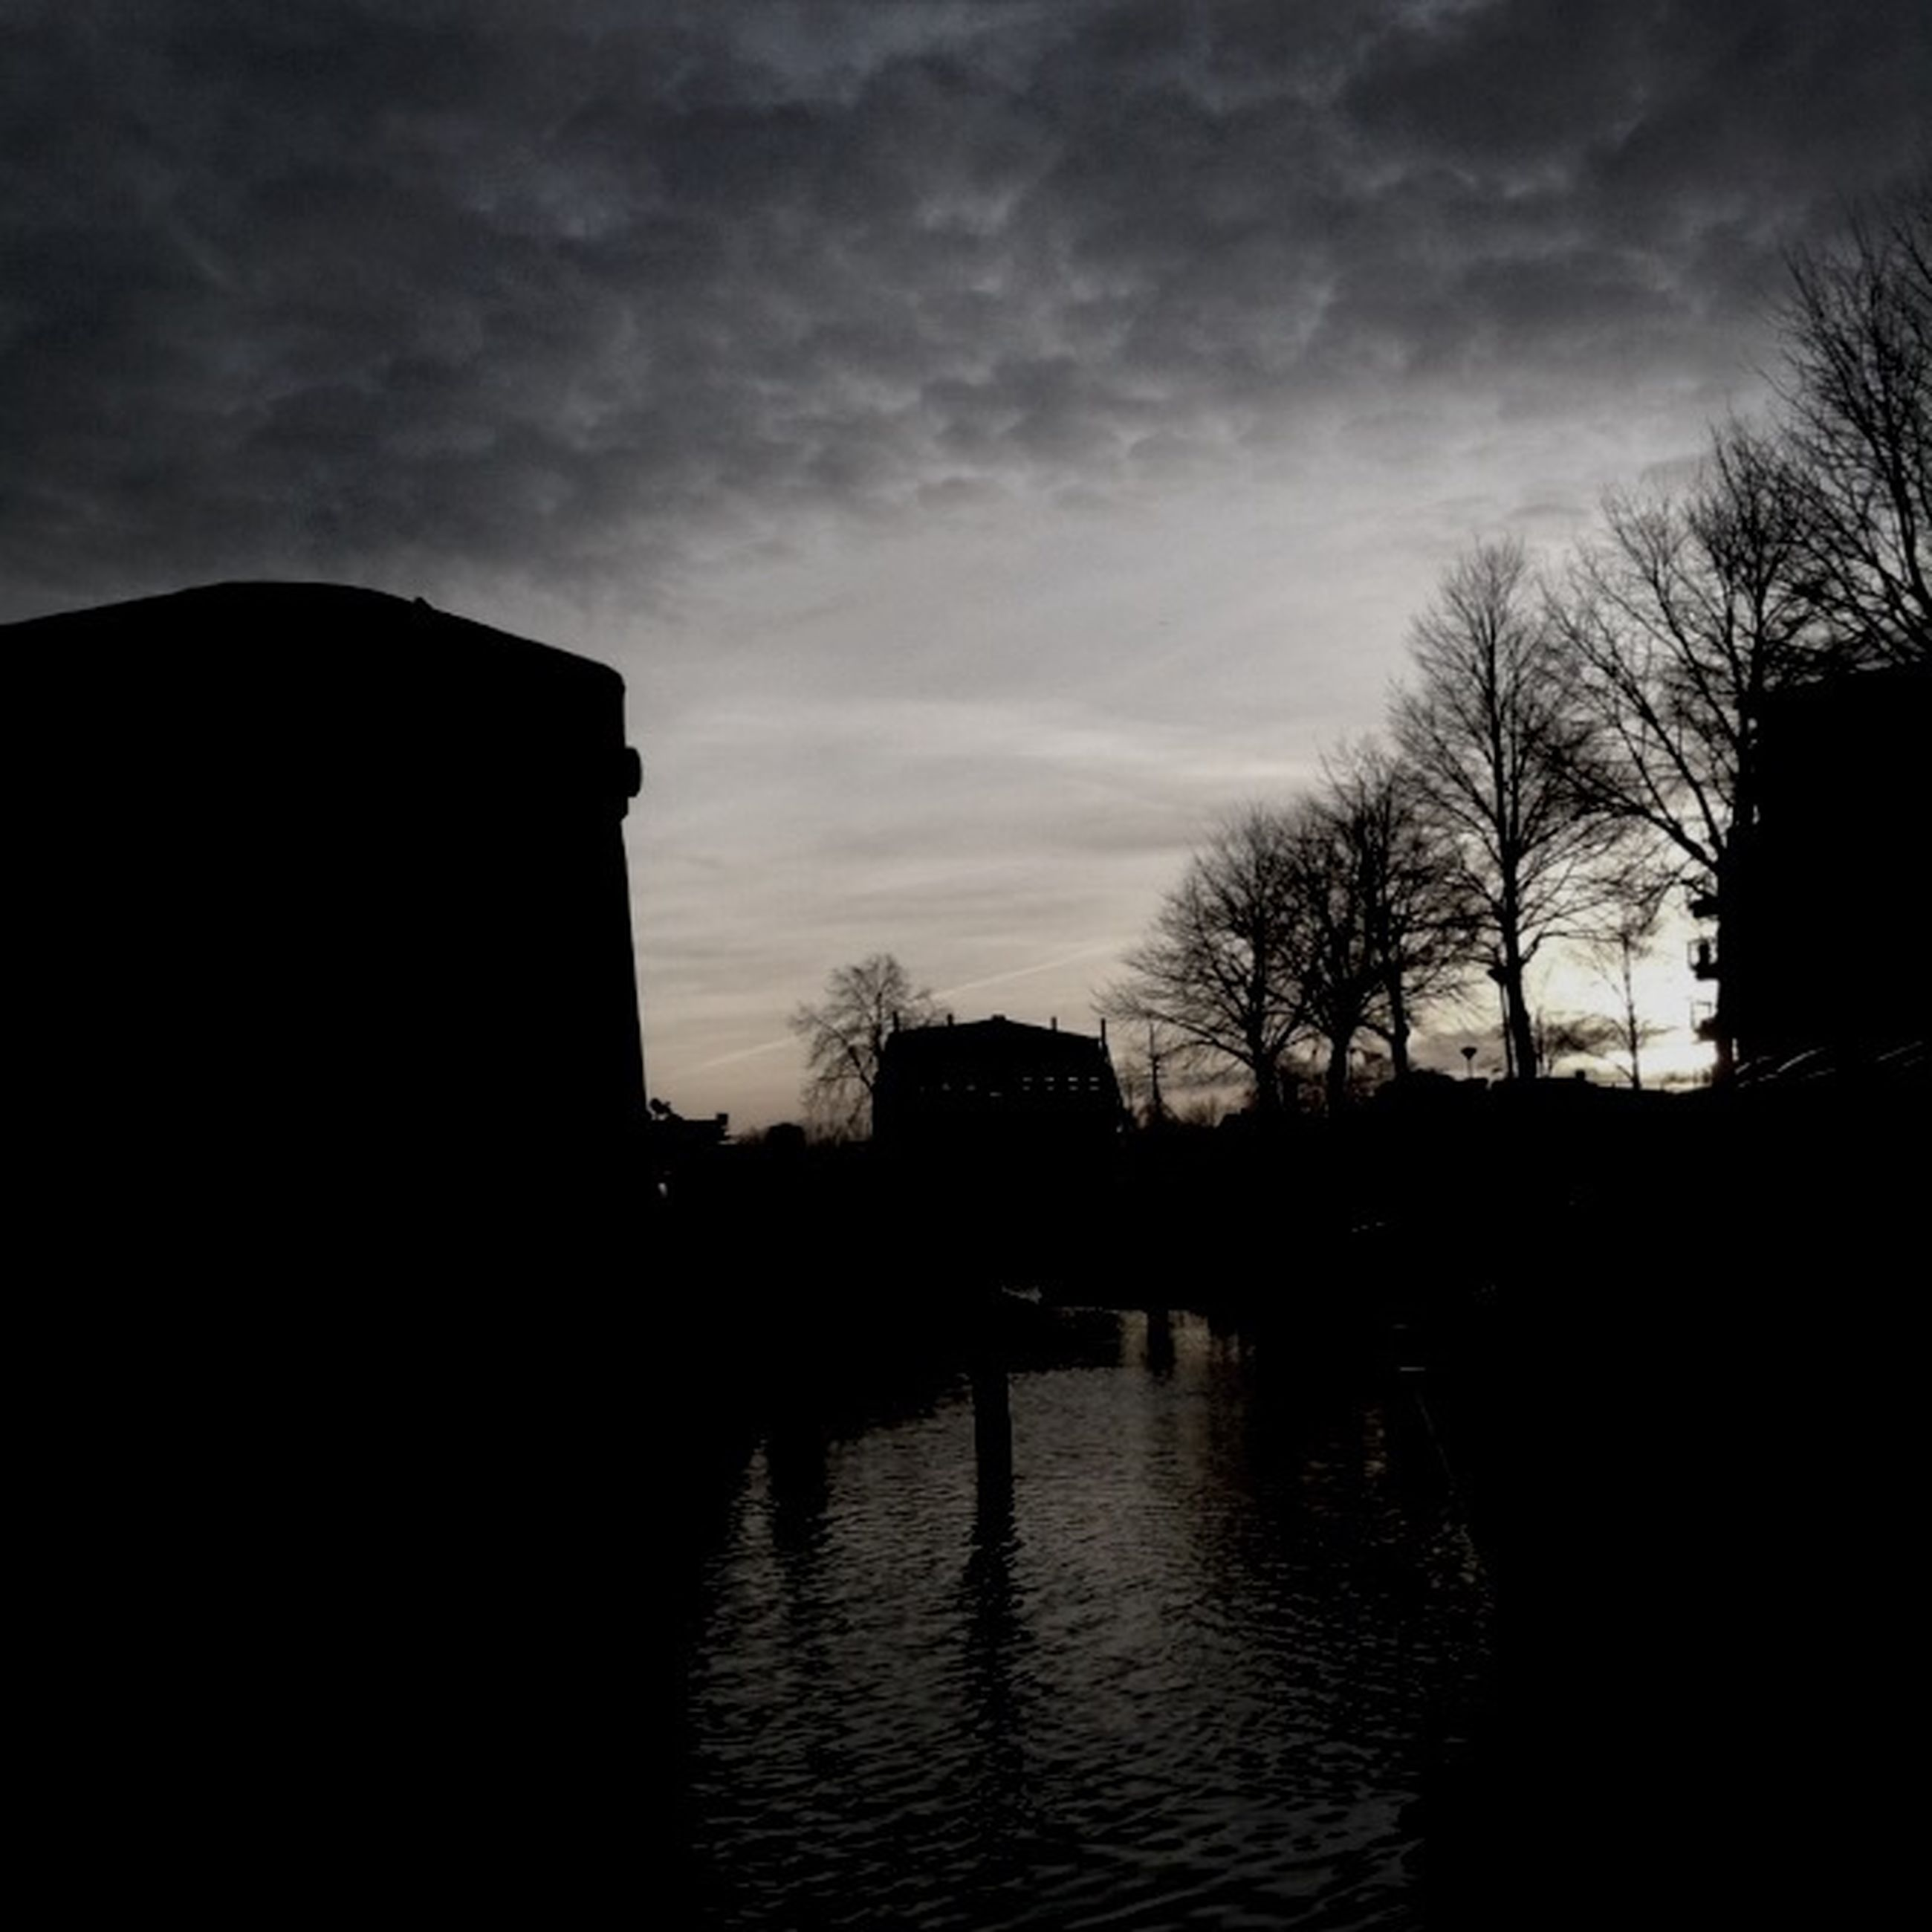 silhouette, sky, sunset, built structure, architecture, building exterior, cloud - sky, tree, water, cloud, river, waterfront, dusk, cloudy, dark, tranquility, nature, scenics, bare tree, tranquil scene